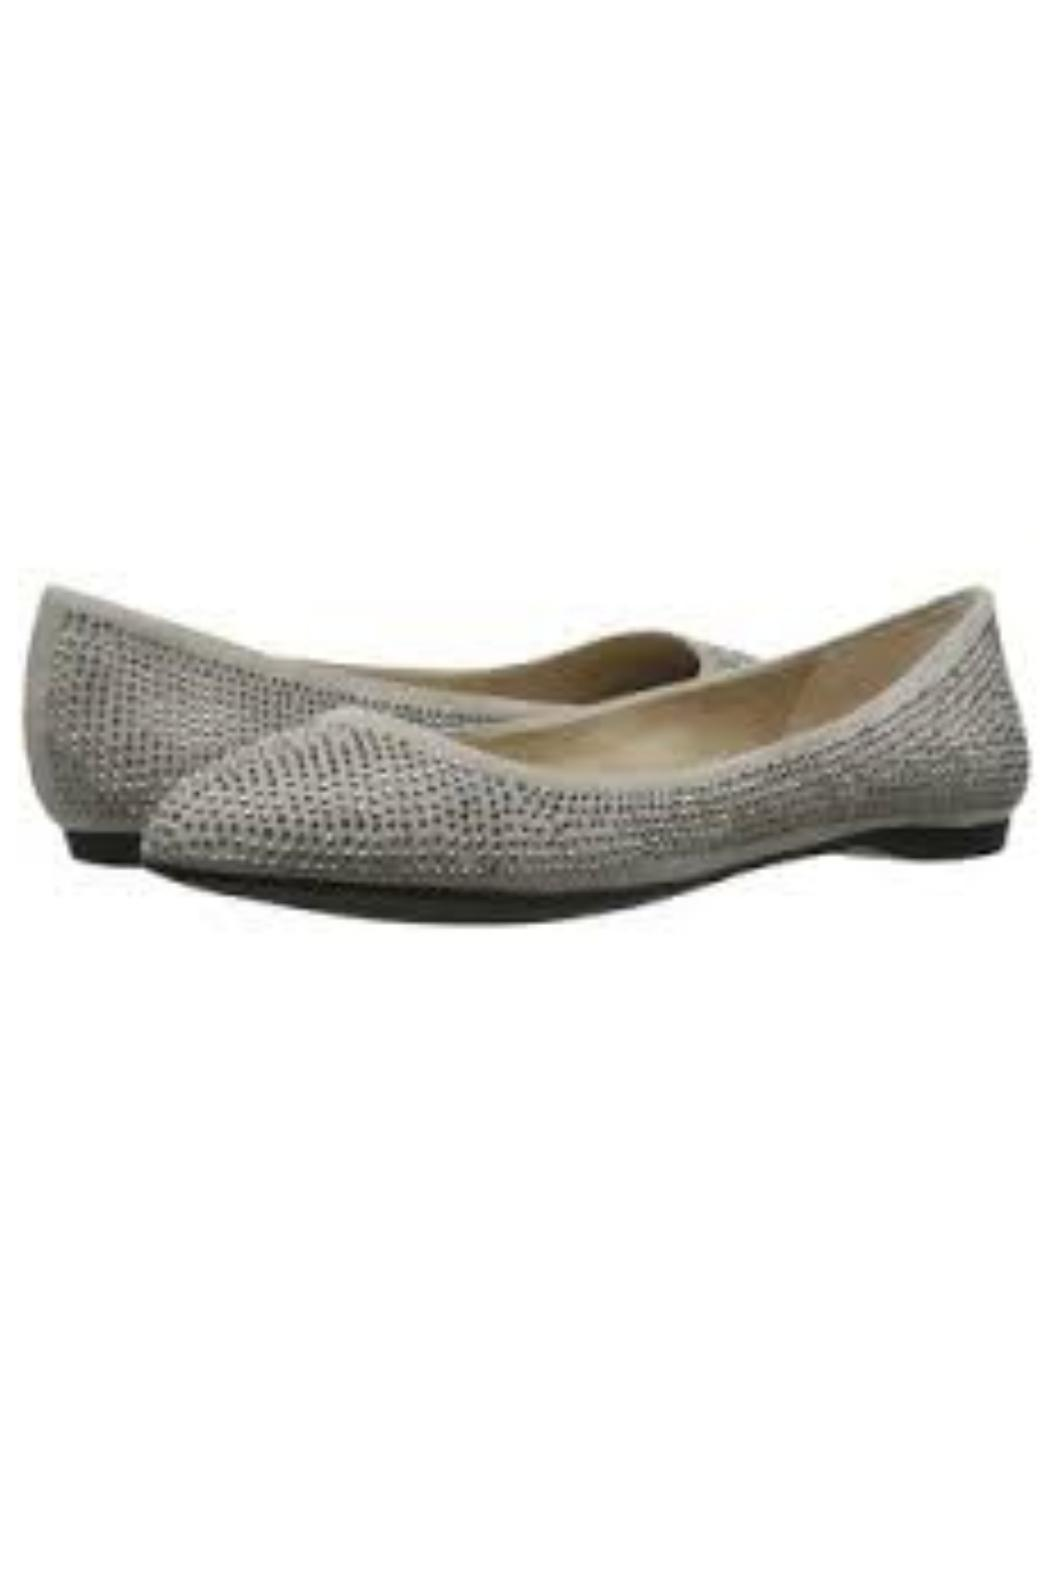 Jessica Simpson Silver Grey Rhinestone Flats - Front Cropped Image